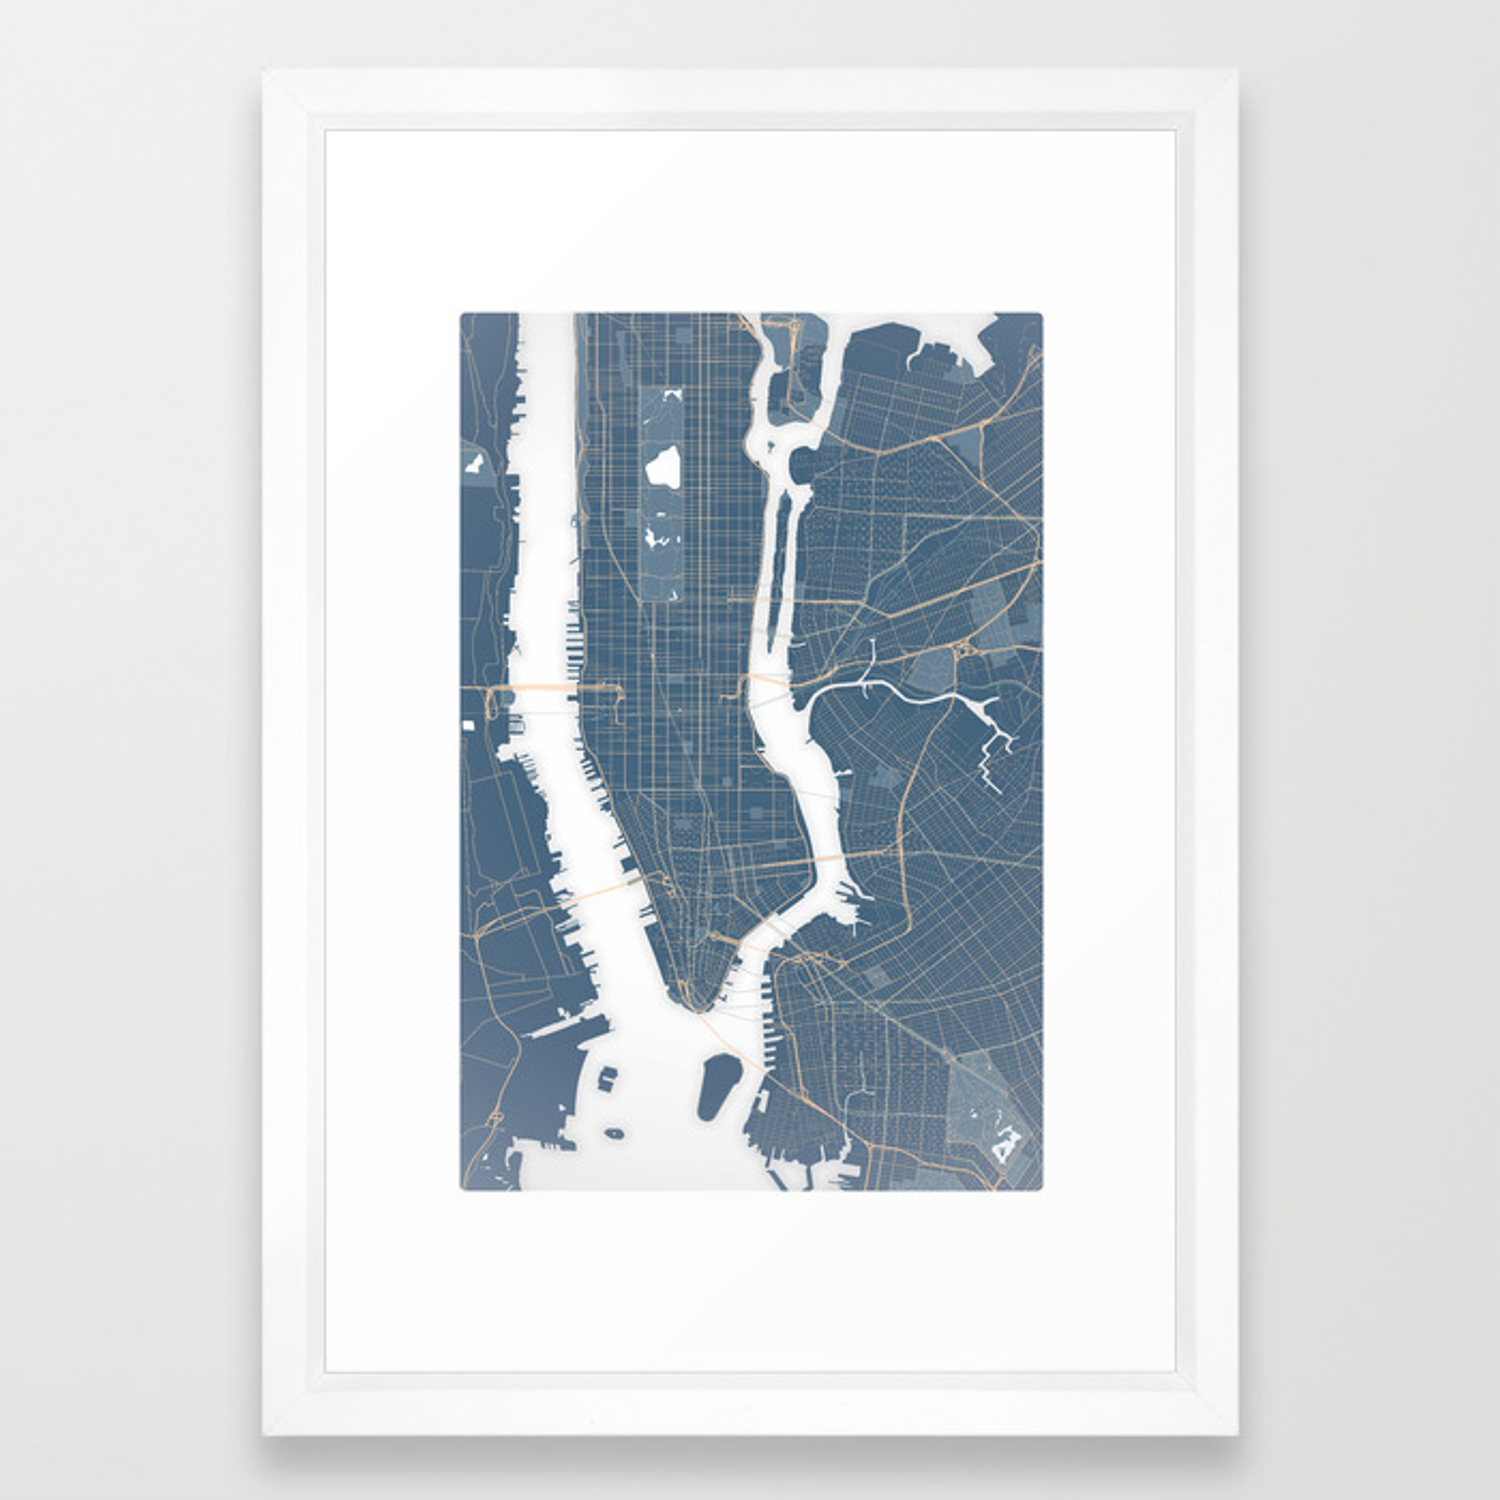 Framed New York Subway Map.New York City Detailed Road Subway Map Framed Art Print